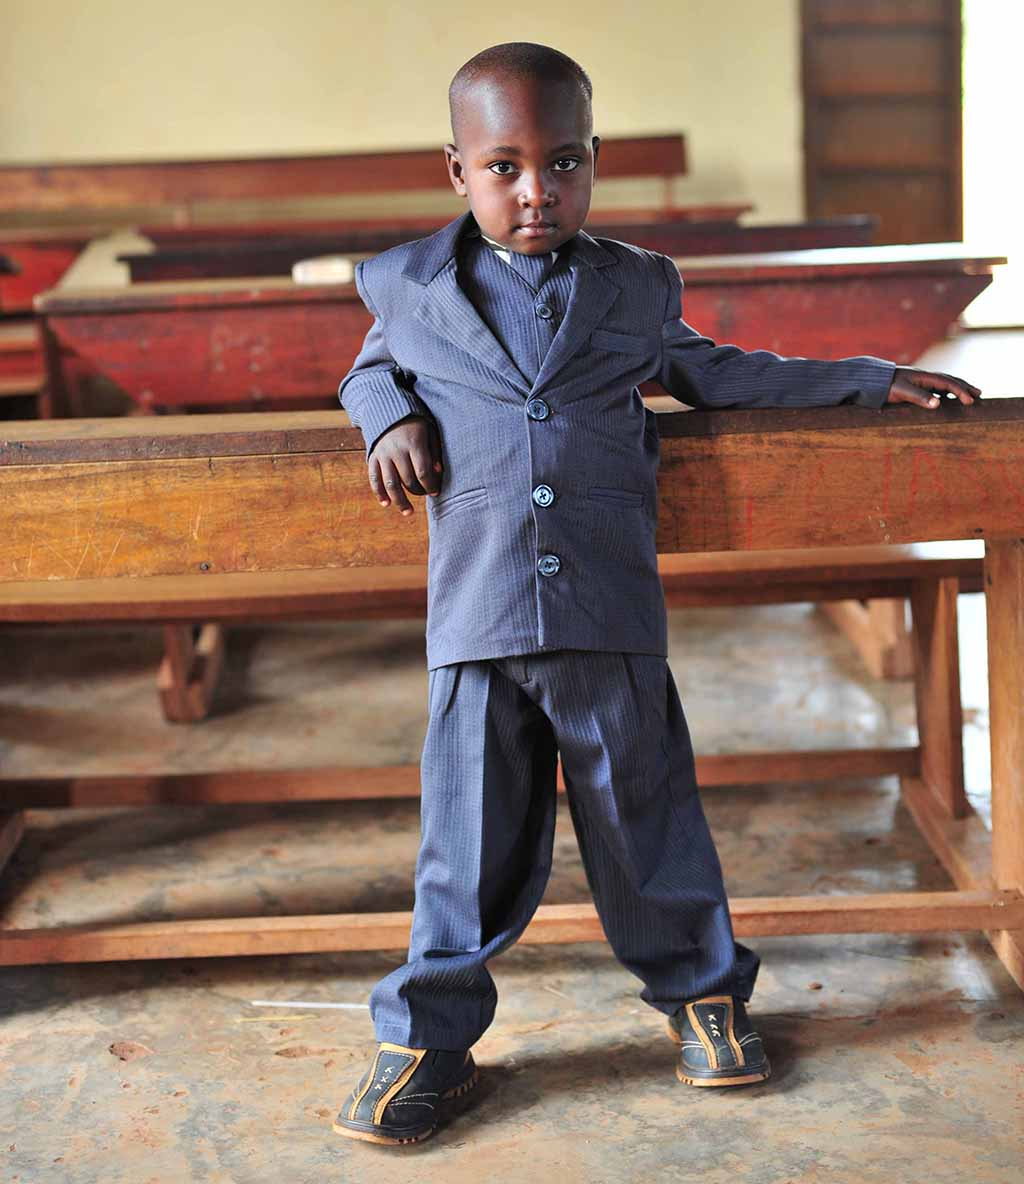 A small boy in a dark blue suit is standing in the classroom and leaning on the desk.